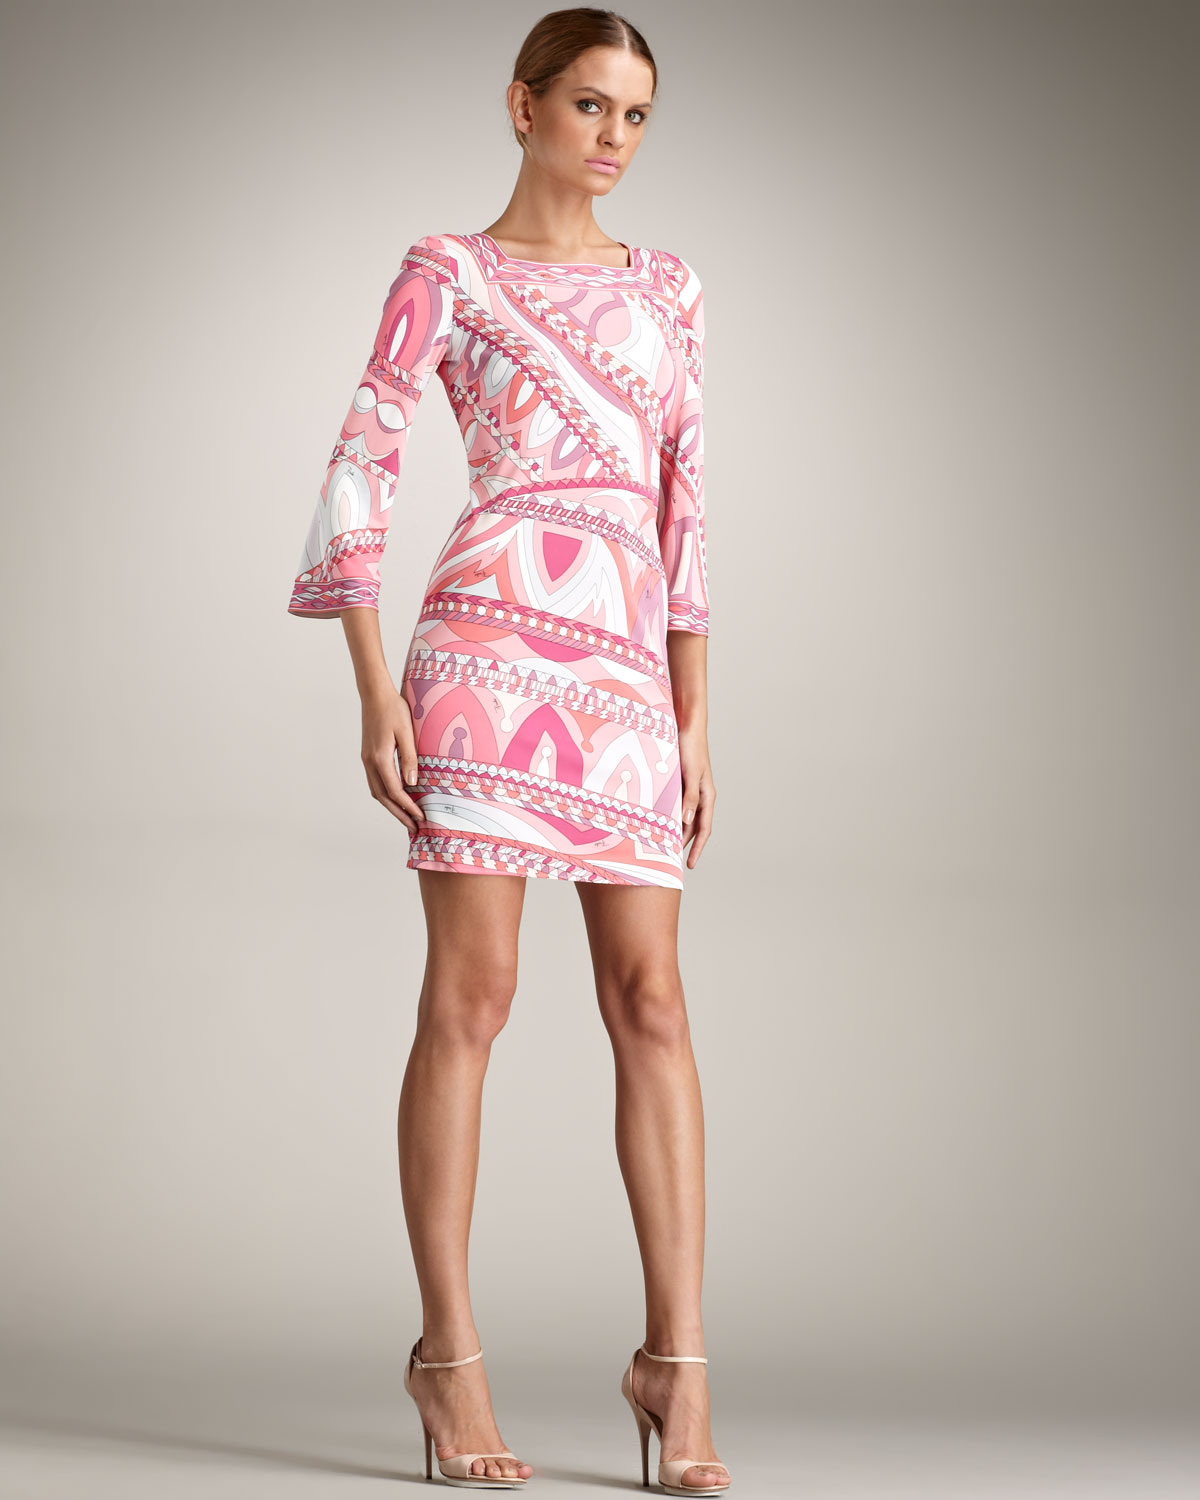 Emilio Pucci Square Neck Dress in Pink